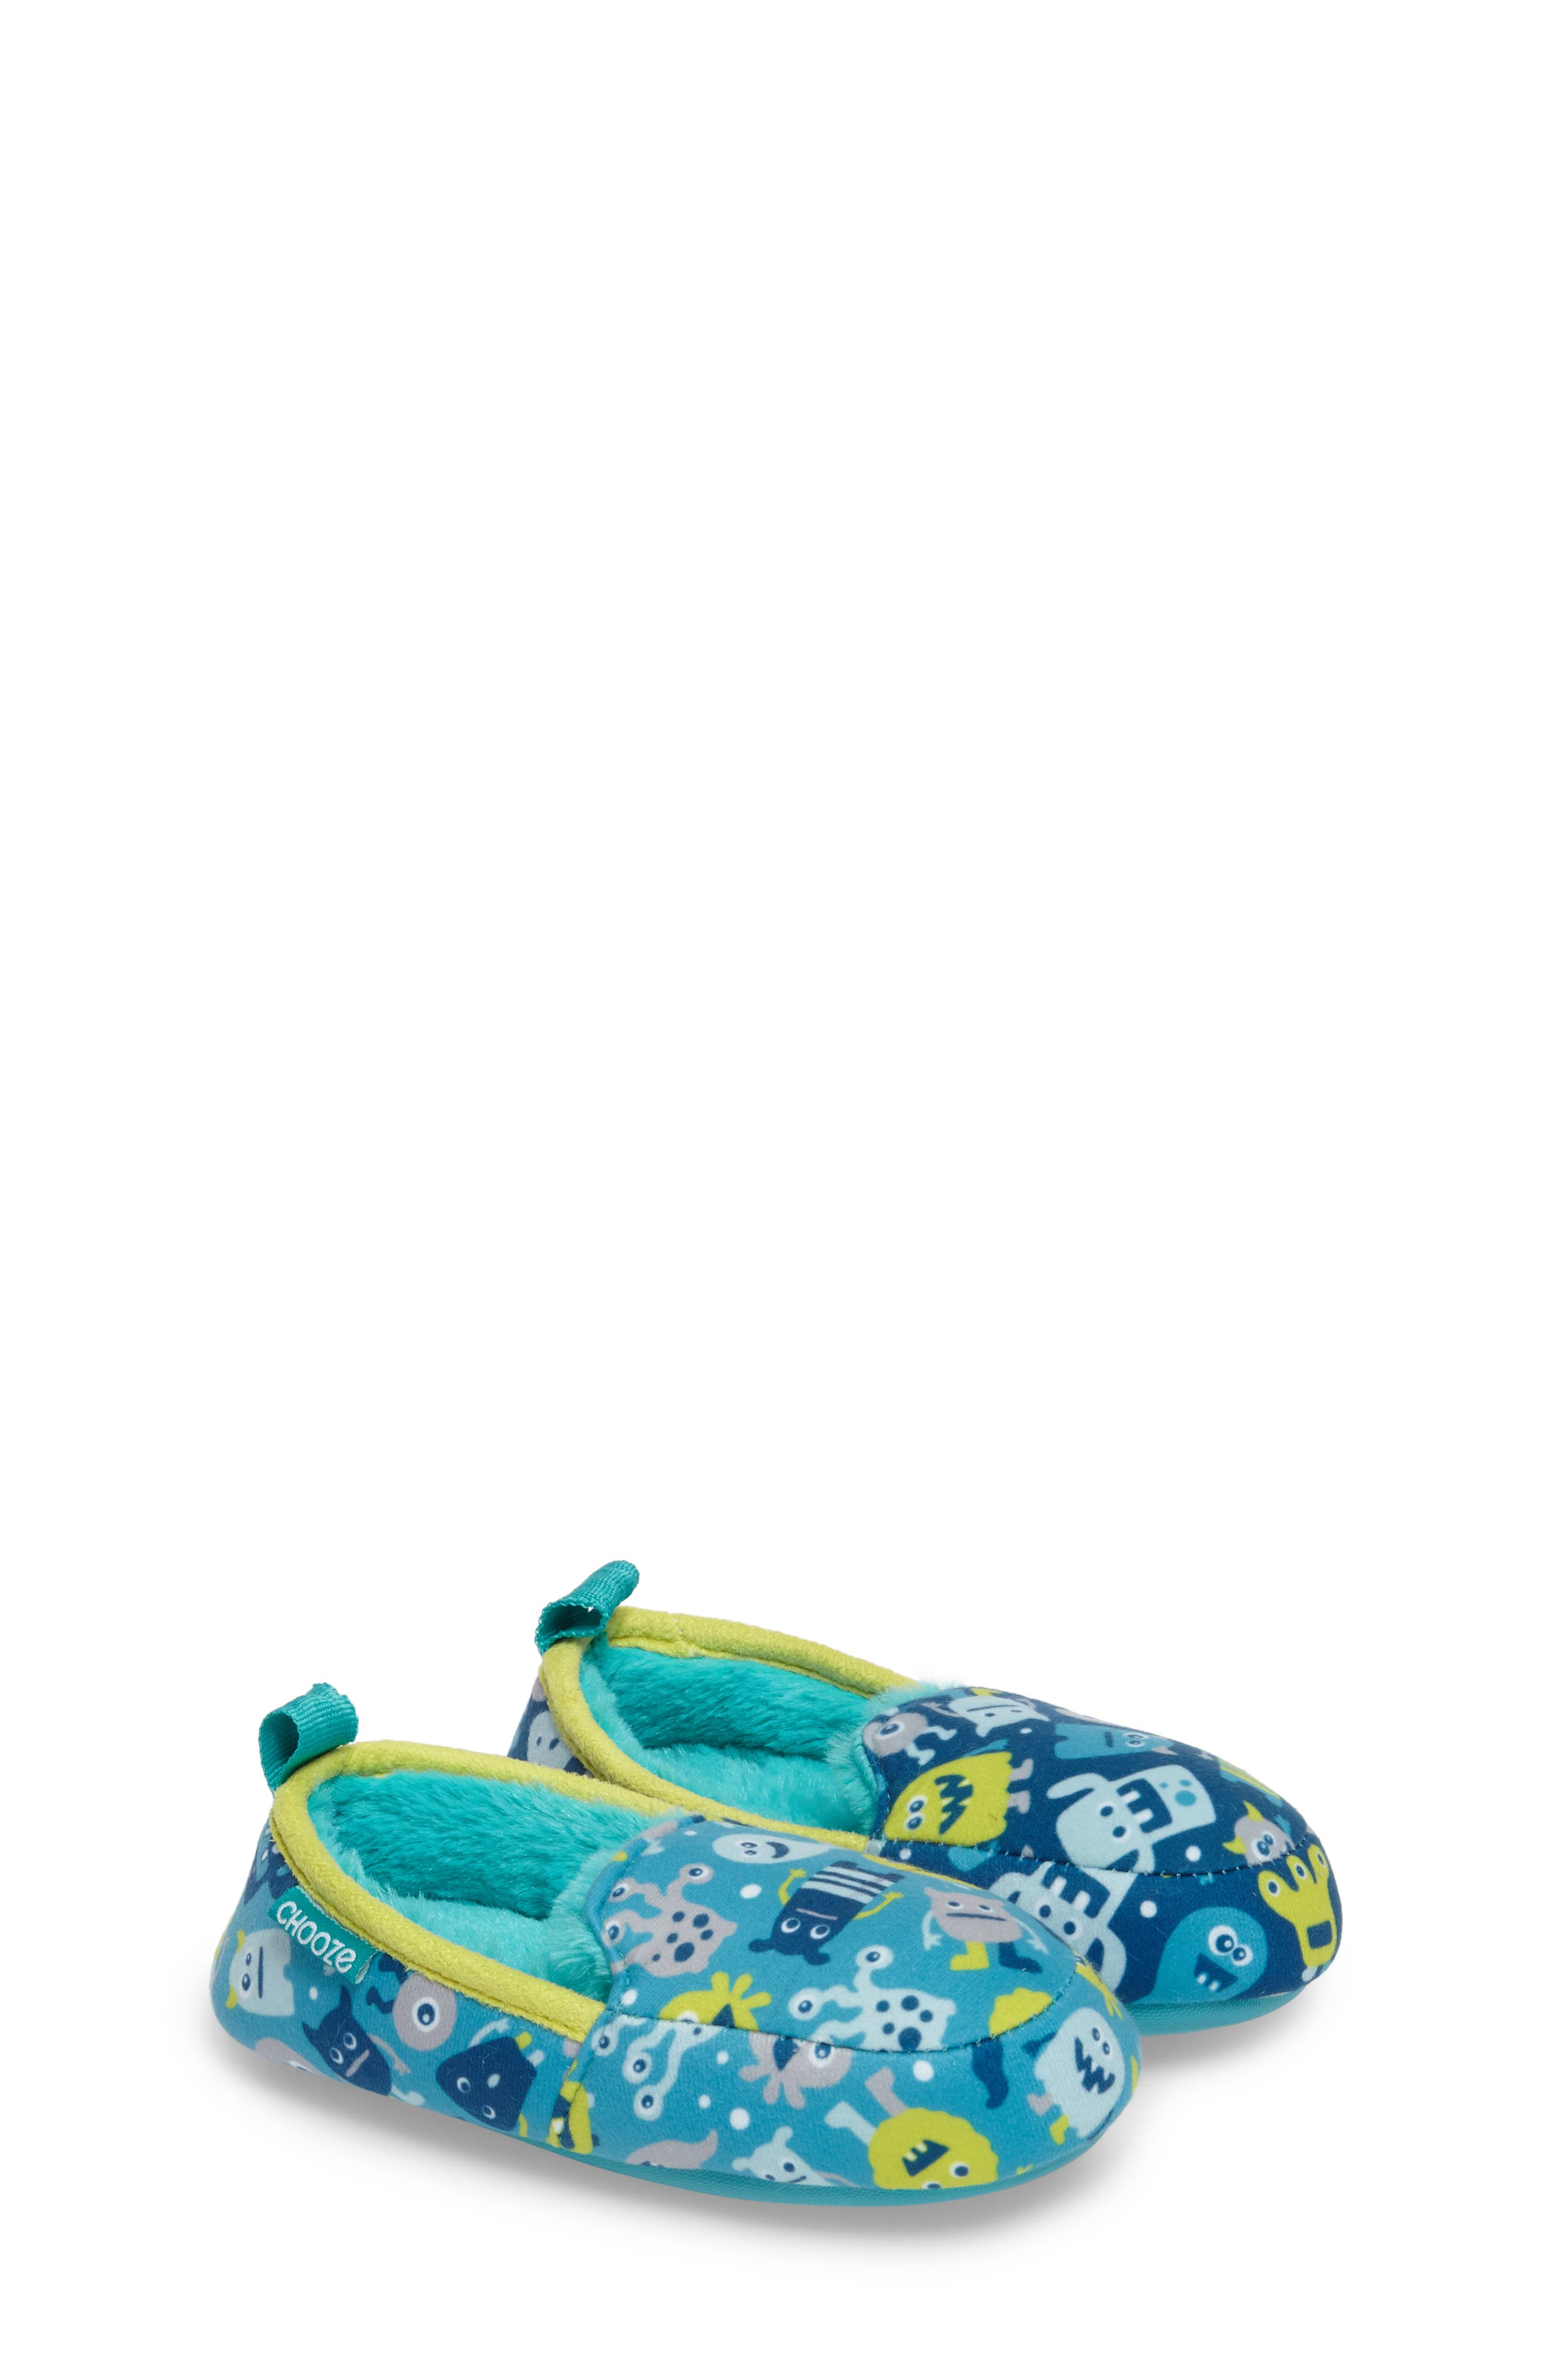 CHOOZE 'Slumber' Slippers (Toddler, Little Kid & Big Kid)